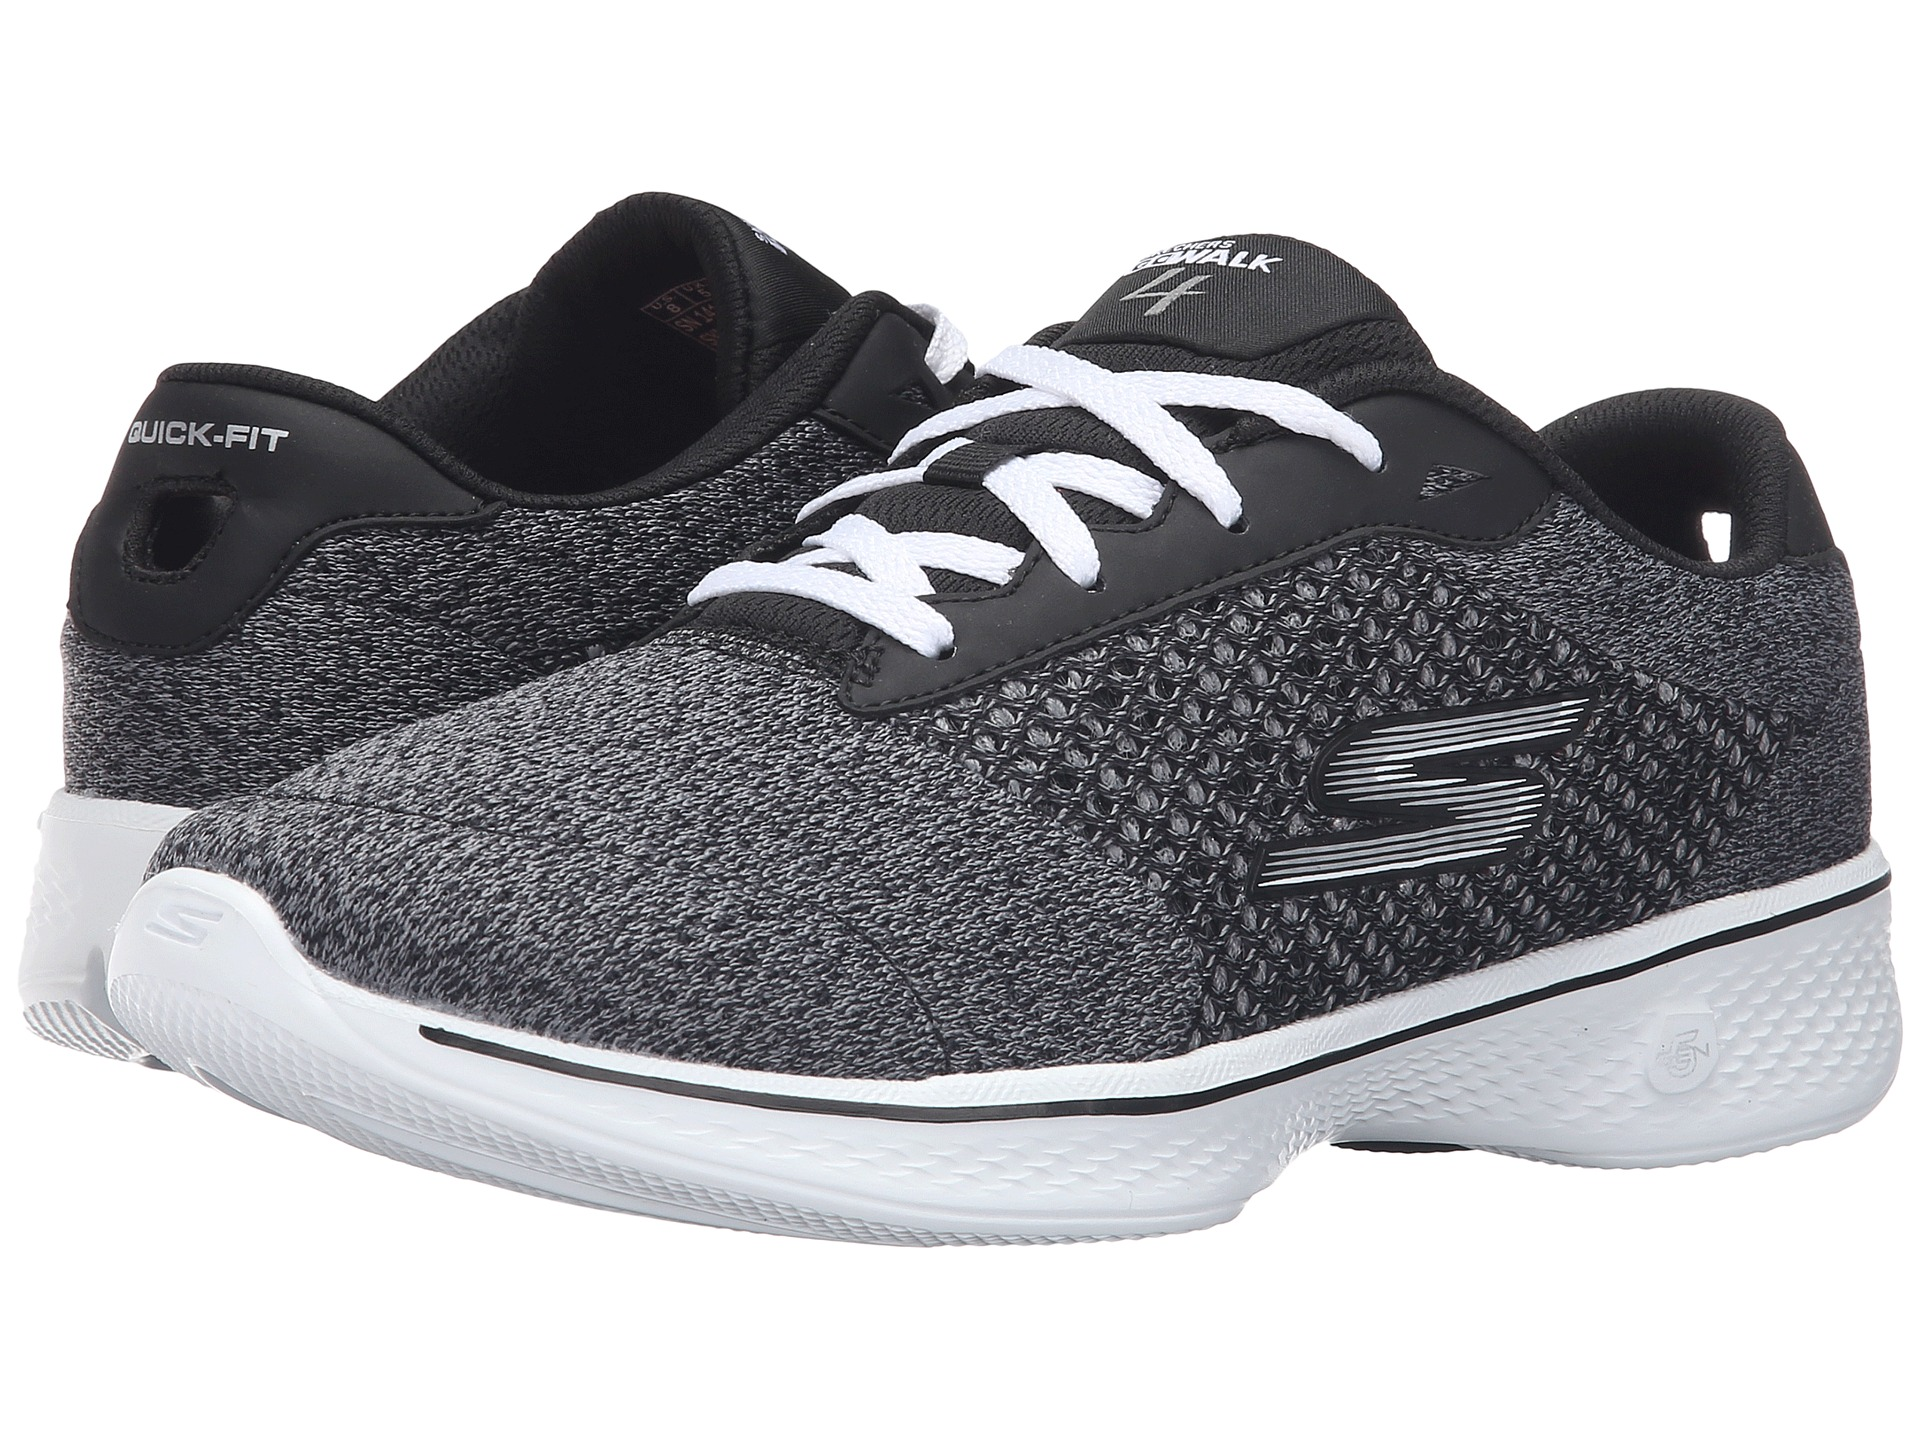 d04a269c3f7f1 Buy skechers go walk tennis shoes > OFF50% Discounted